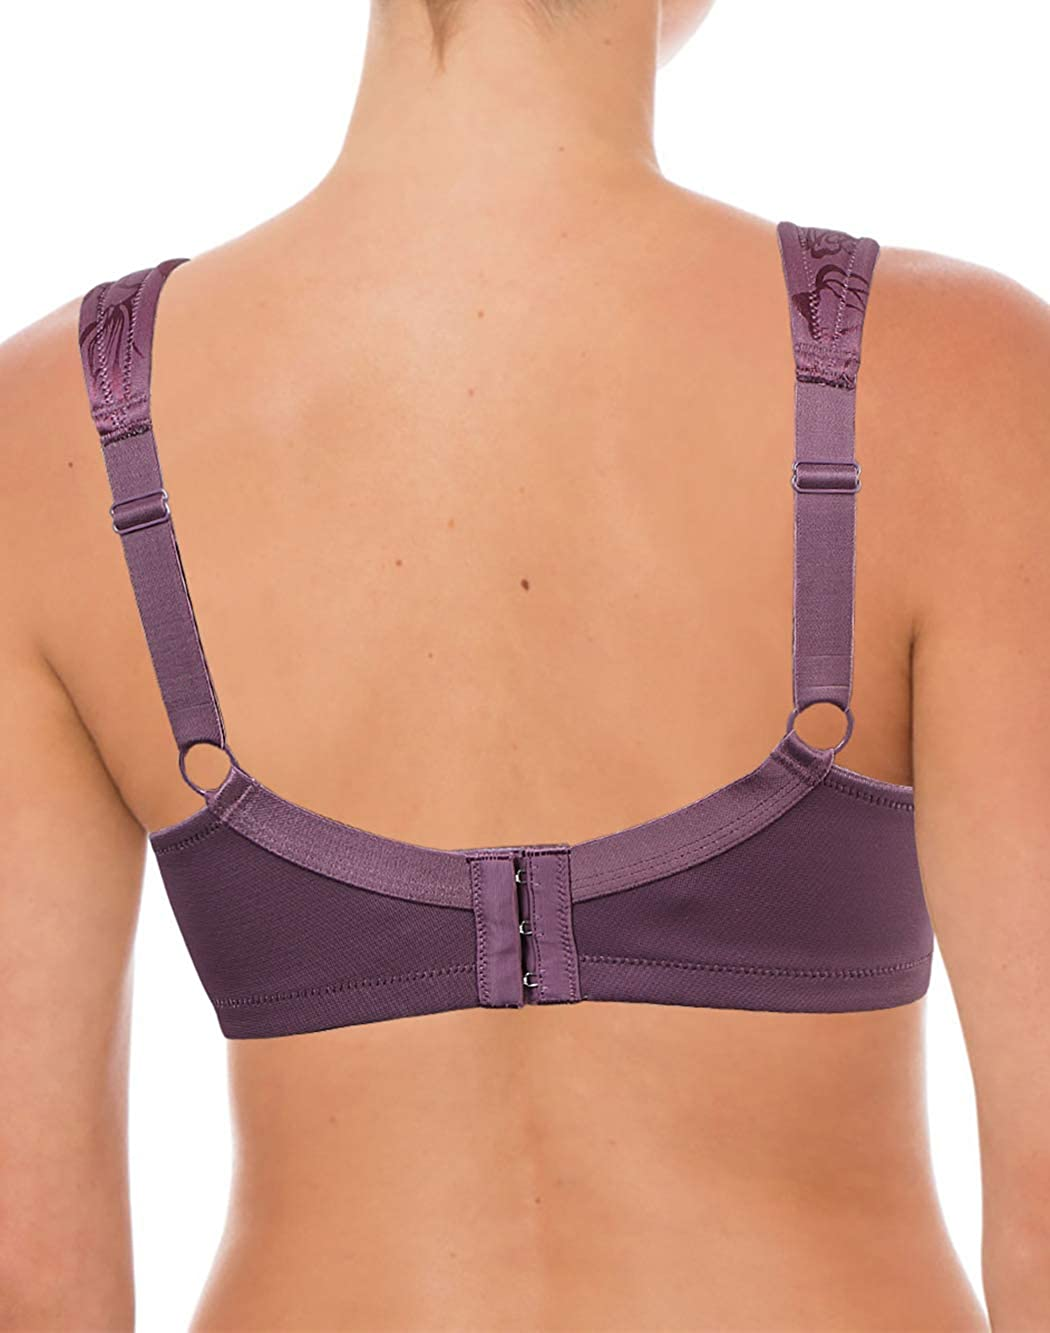 36DDD Purple Wirefree Unpadded Supportive Full Figure No Side Effects Unlined Soft Cup Plus Size Minimizer Wireless Everyday Bra